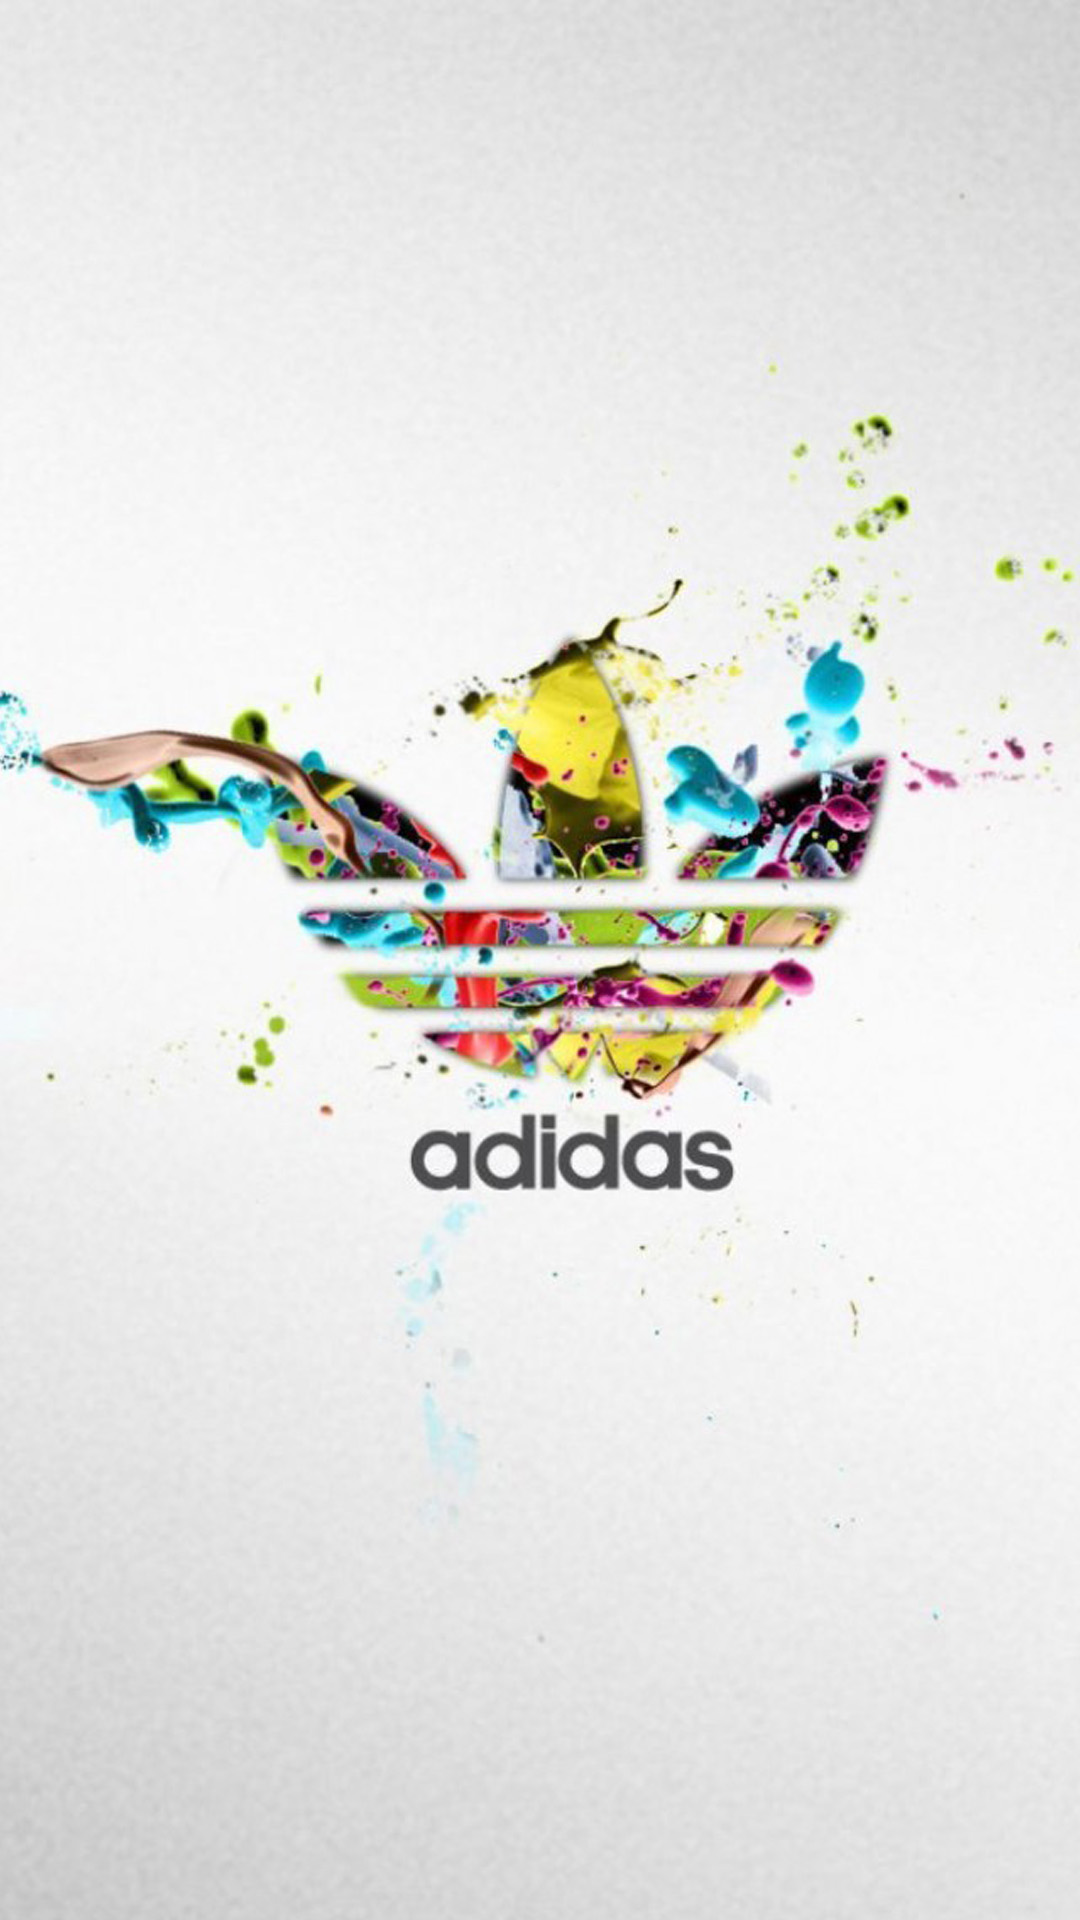 Adidas Logo Wallpaper Iphone Wallpaper